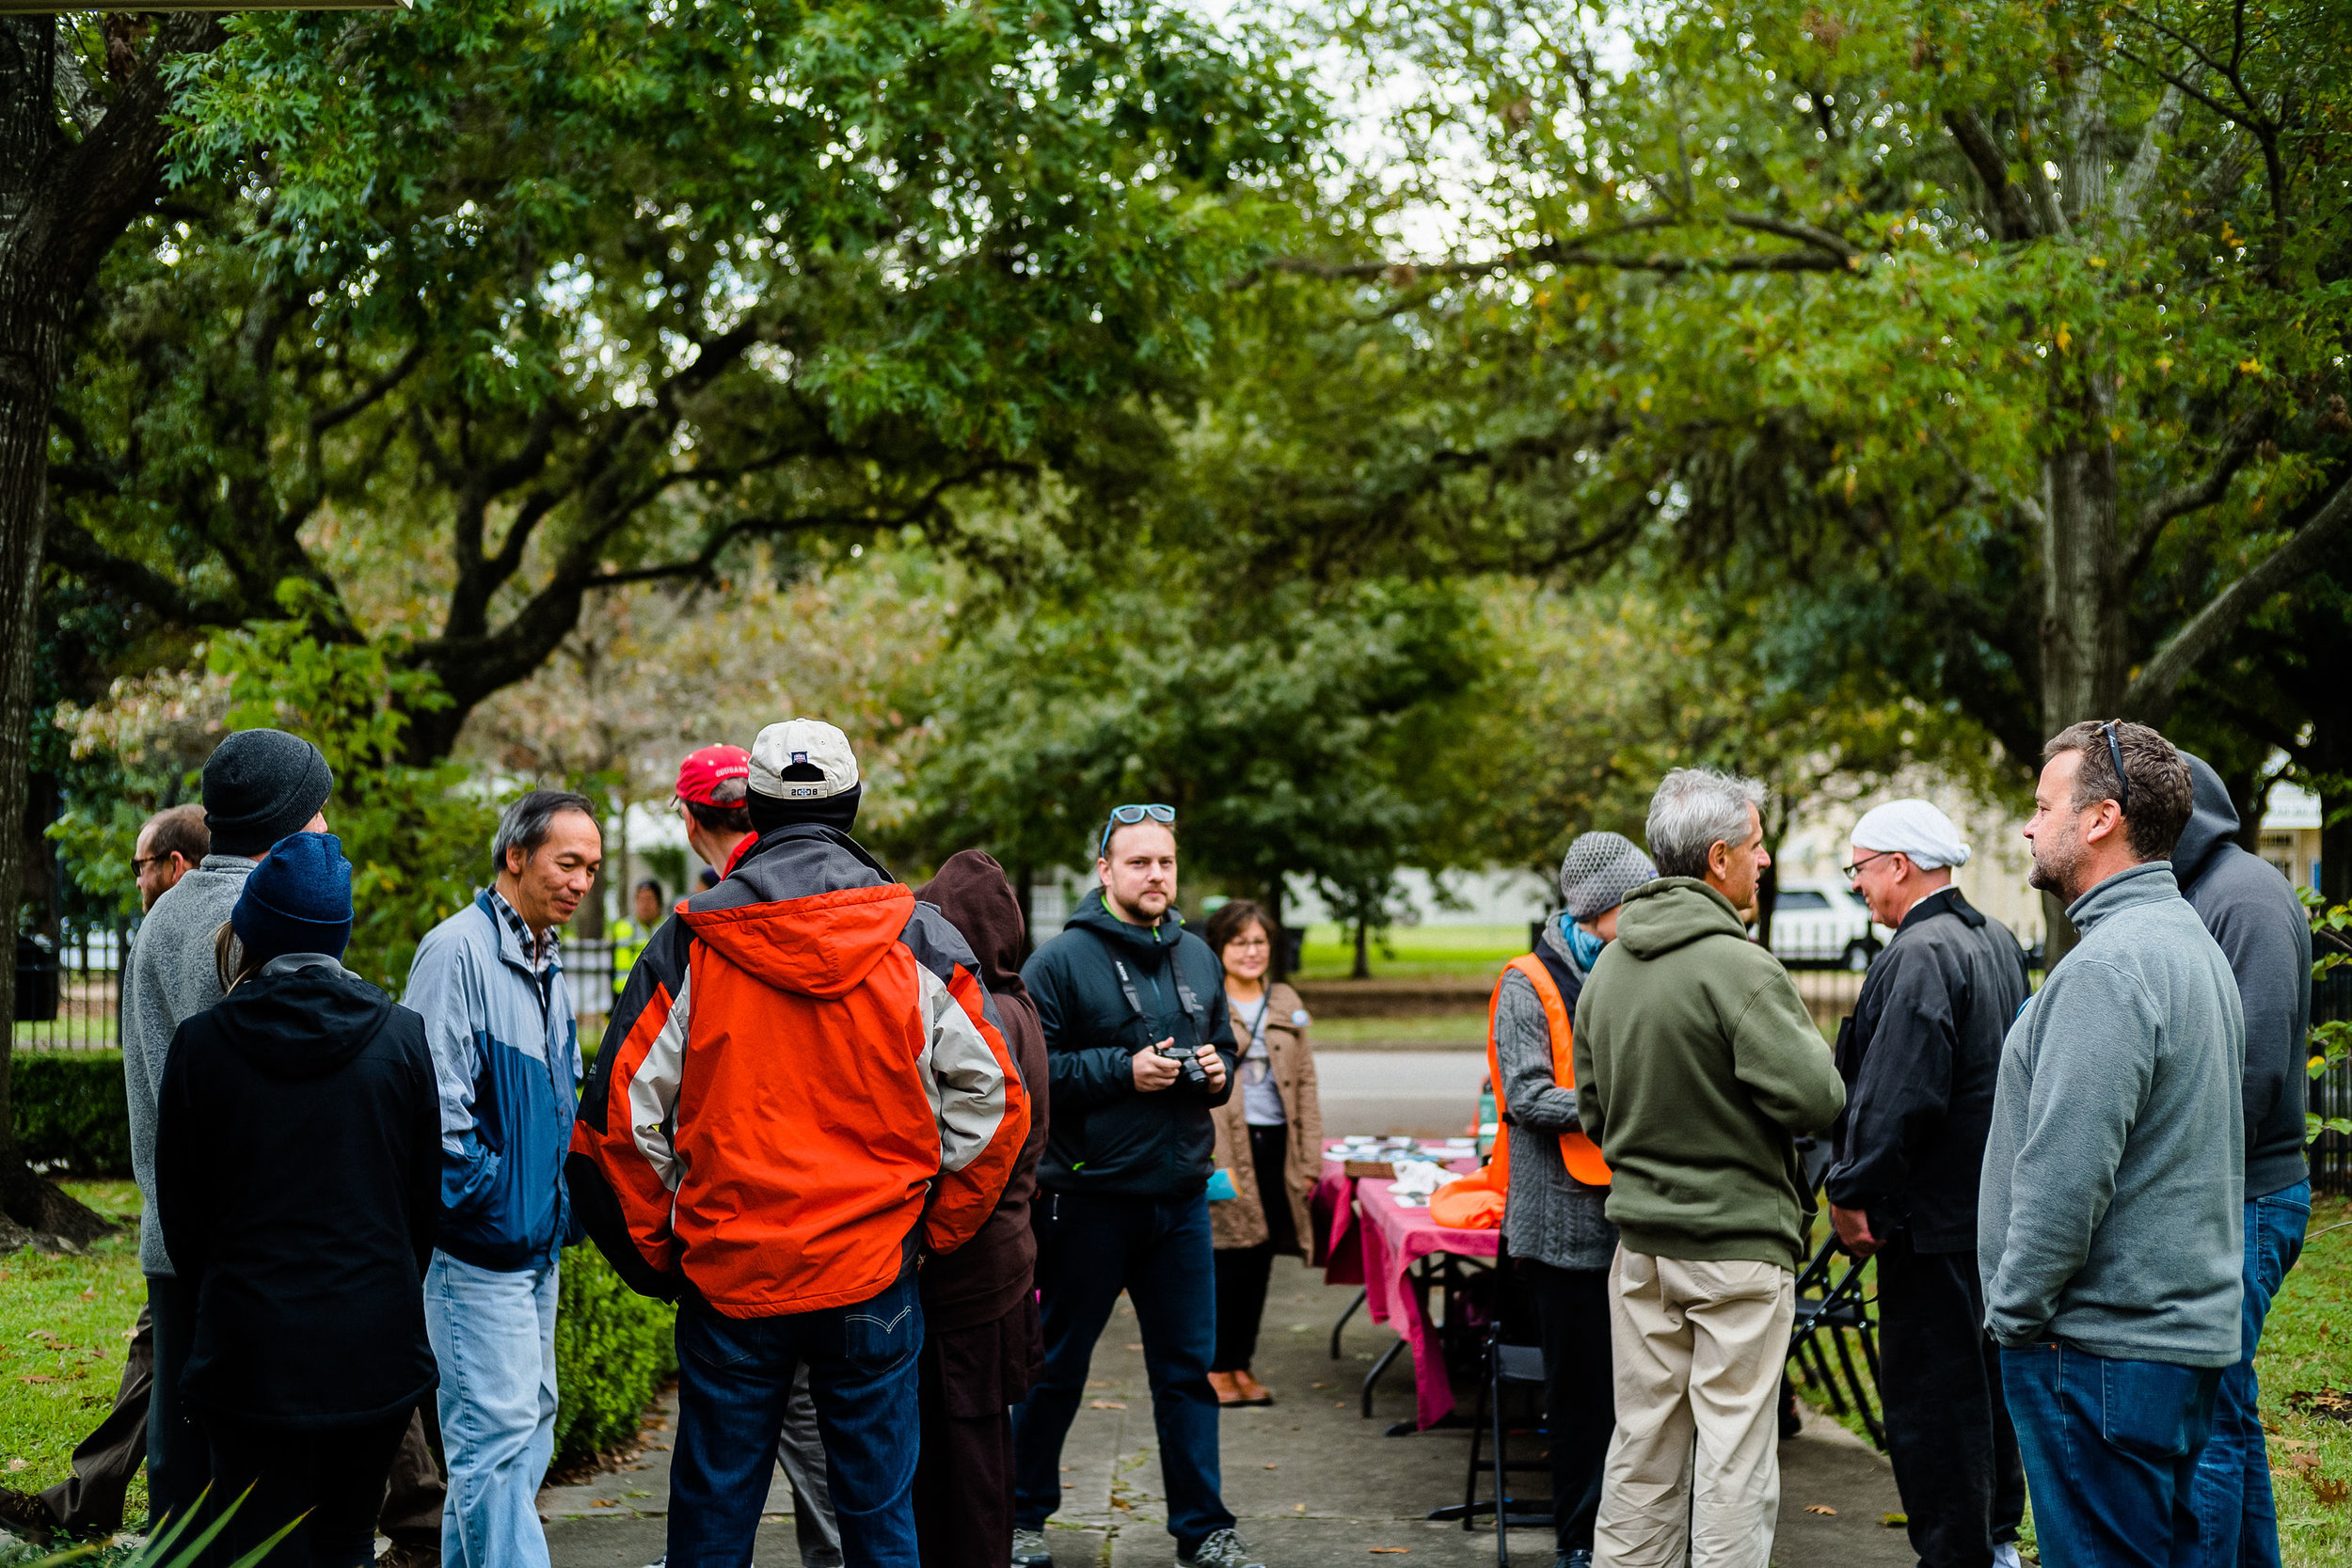 2018-Walk-to-feed-the-hungry-Houston-518.jpg